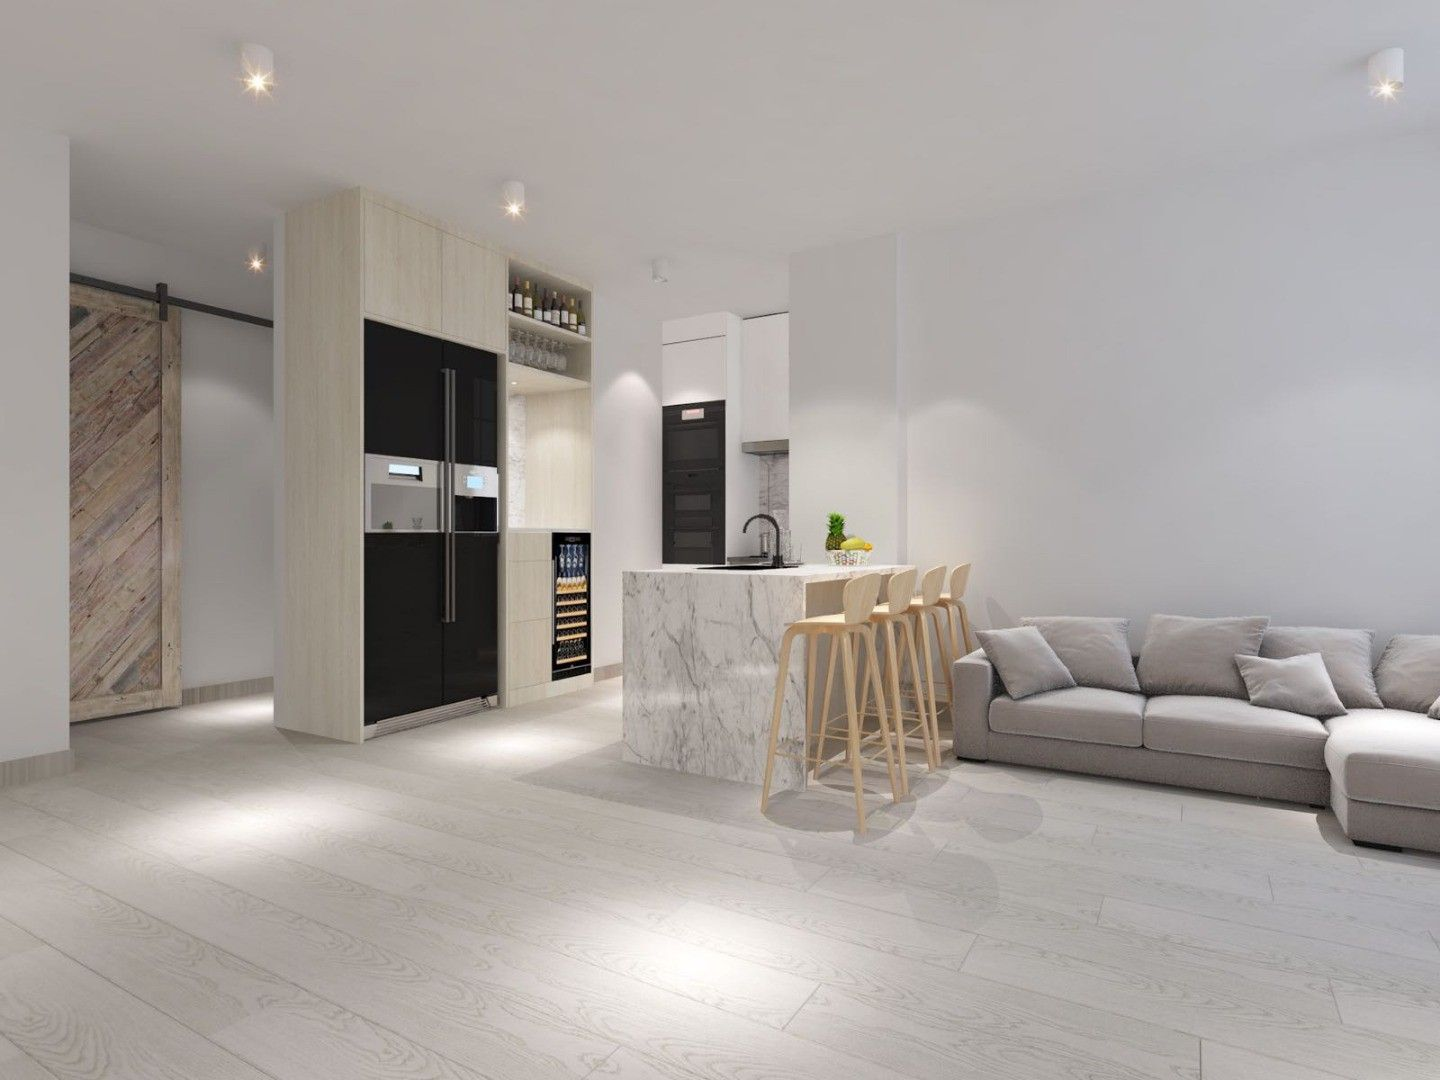 Small kitchen ideas remodel residential interior design hong kong interior designer find the best freelance interior designers expertise in small space